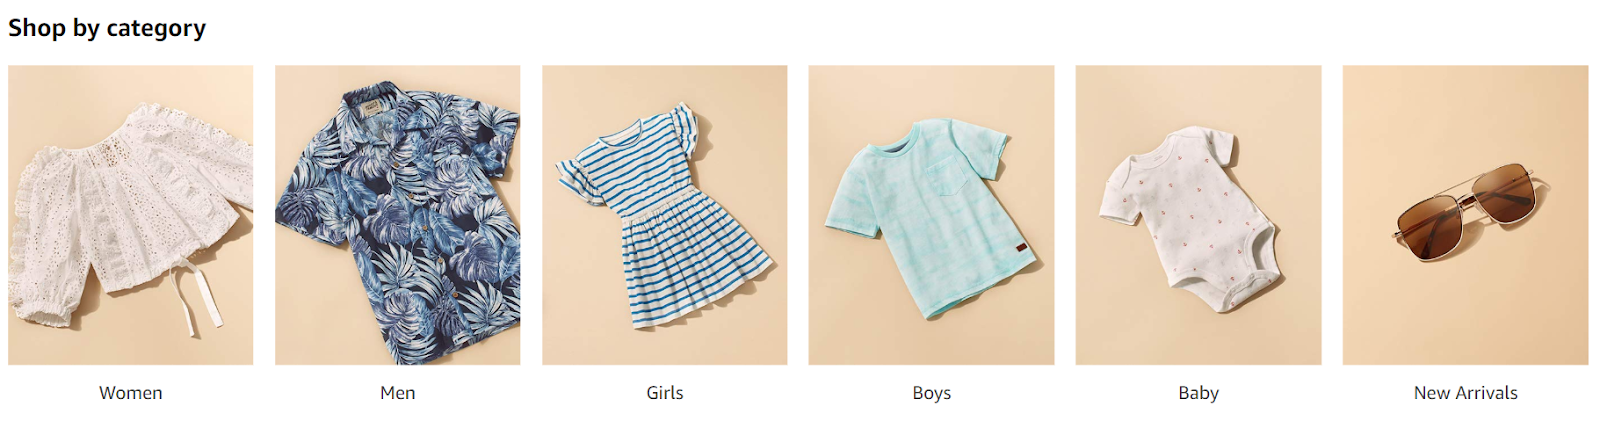 amazon prime wardrobe category selections from mens, womens, children, baby and accessories